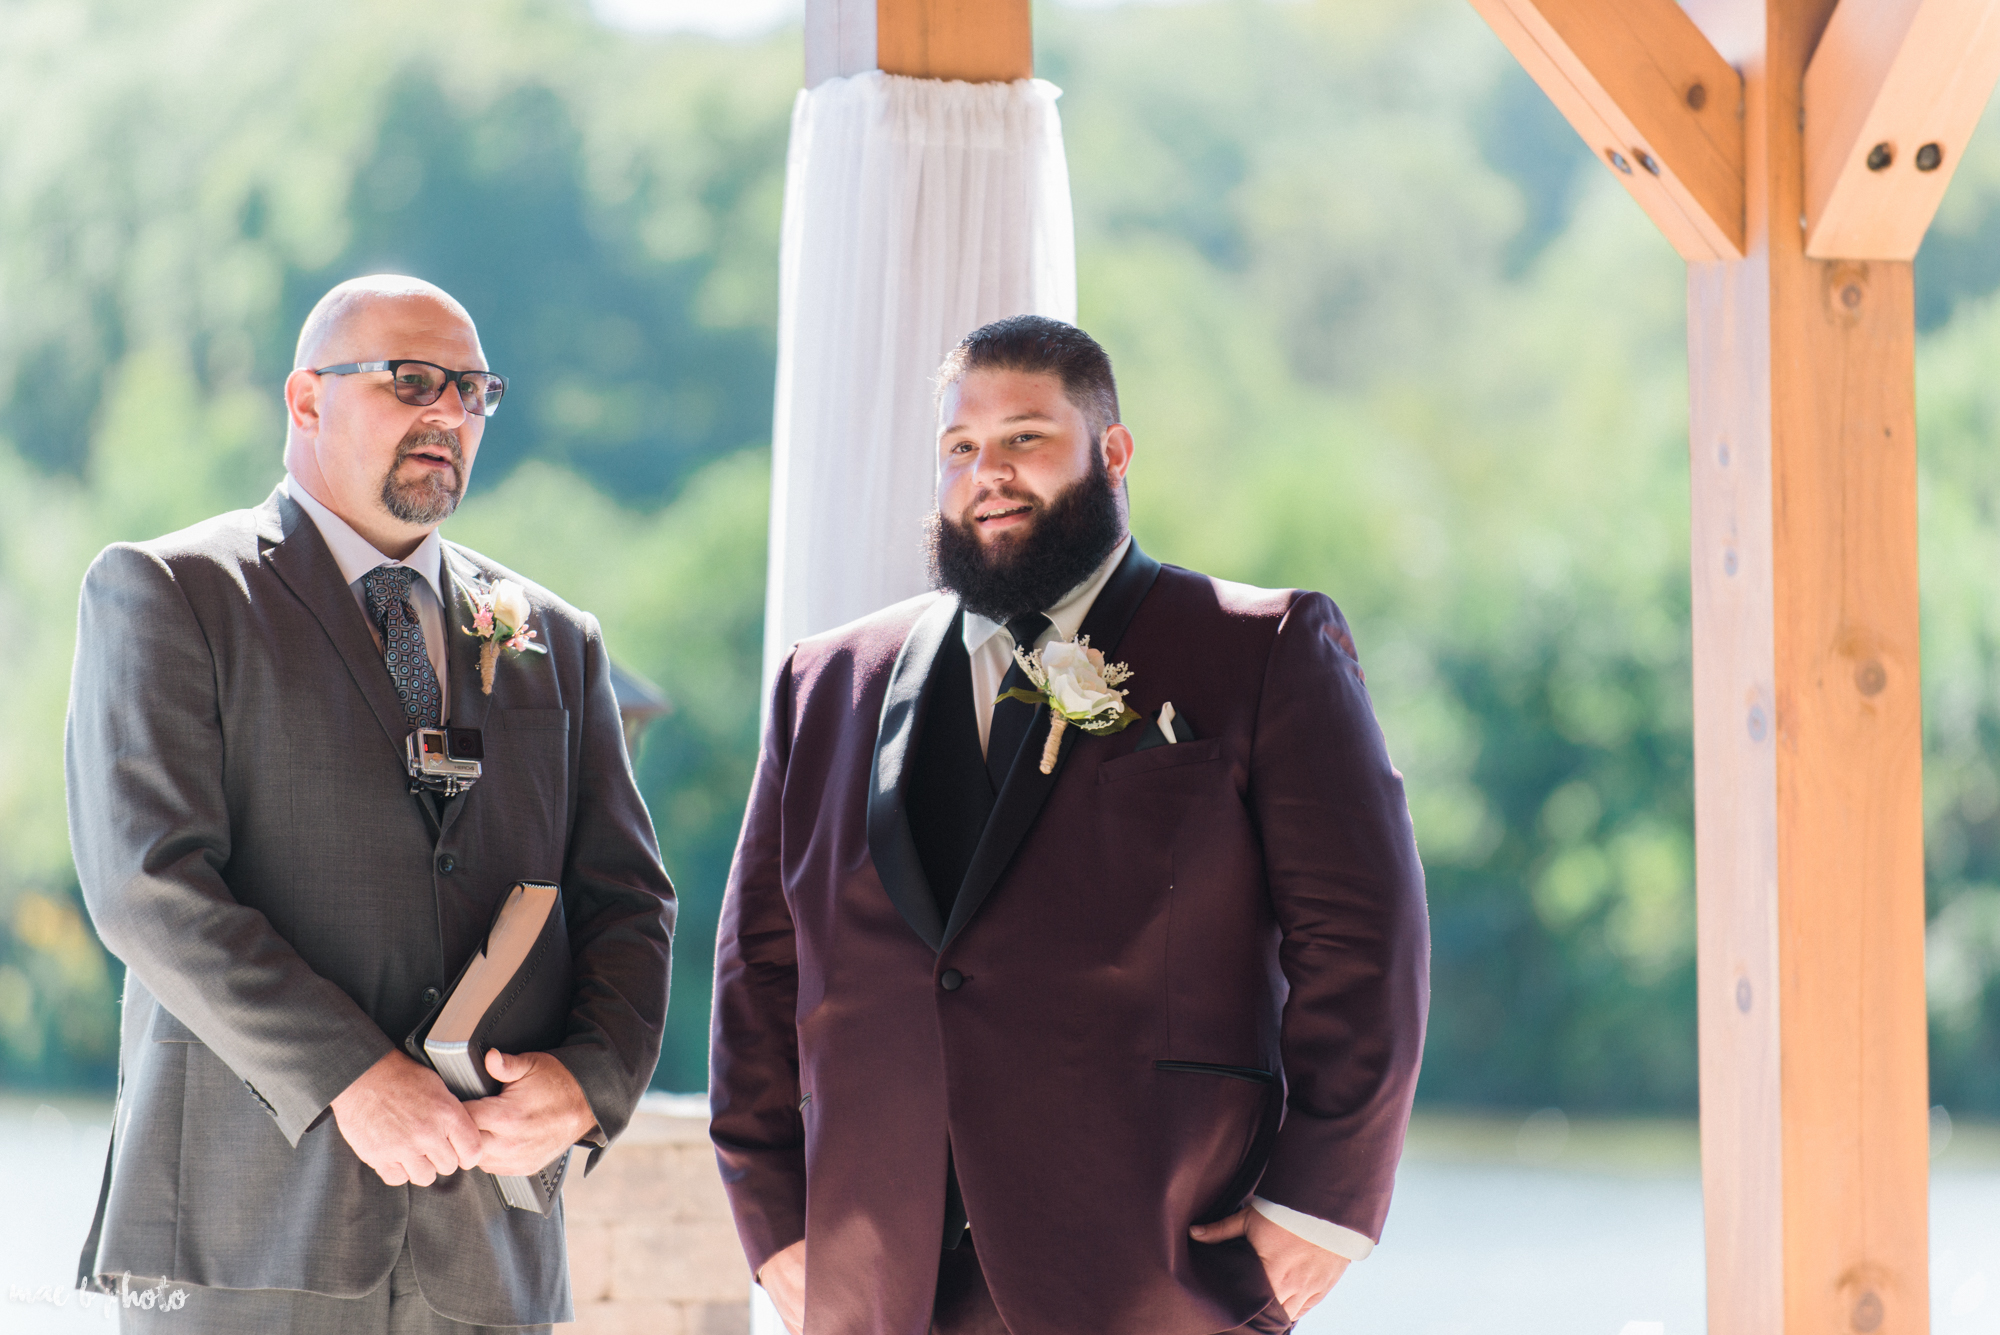 Amber & Kyle's Rustic Barn Wedding at SNPJ in Enon Valley, PA by Mae B Photo-40.jpg